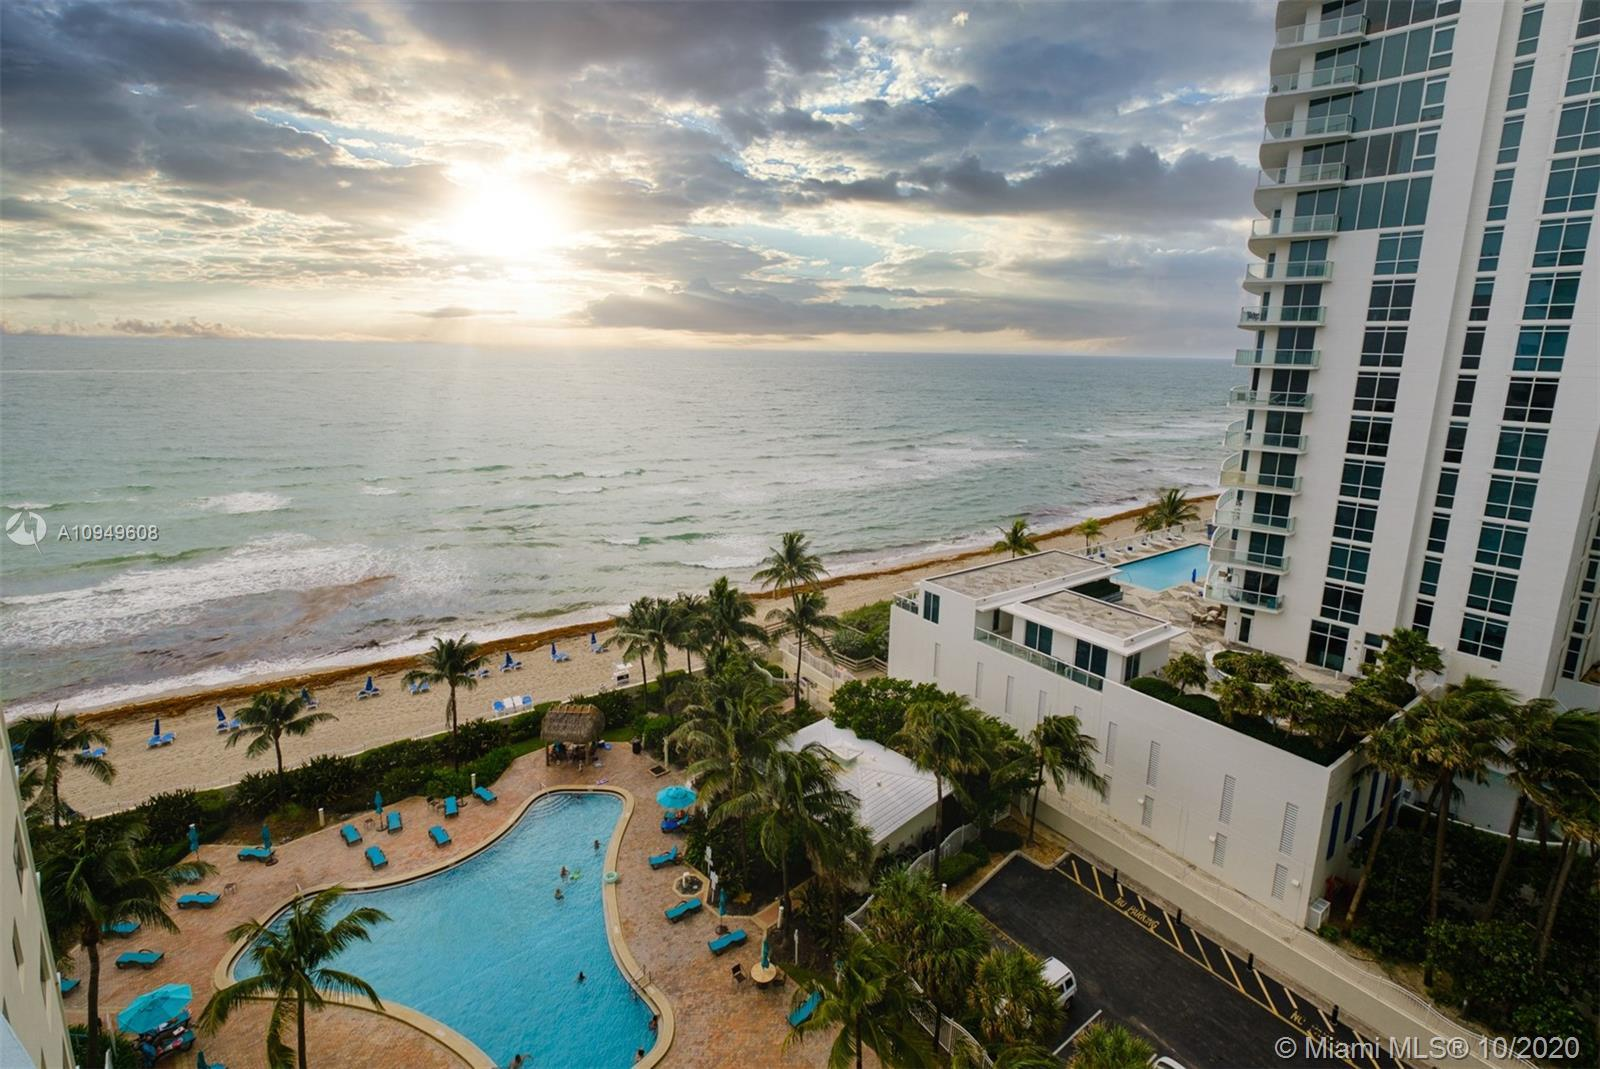 !!! OCEAN VIEW & MOVE IN READY WITH FURNITURE INCLUDED !!! *NO RENTALS RESTRICTIONS* CENTRALLY LOCAT